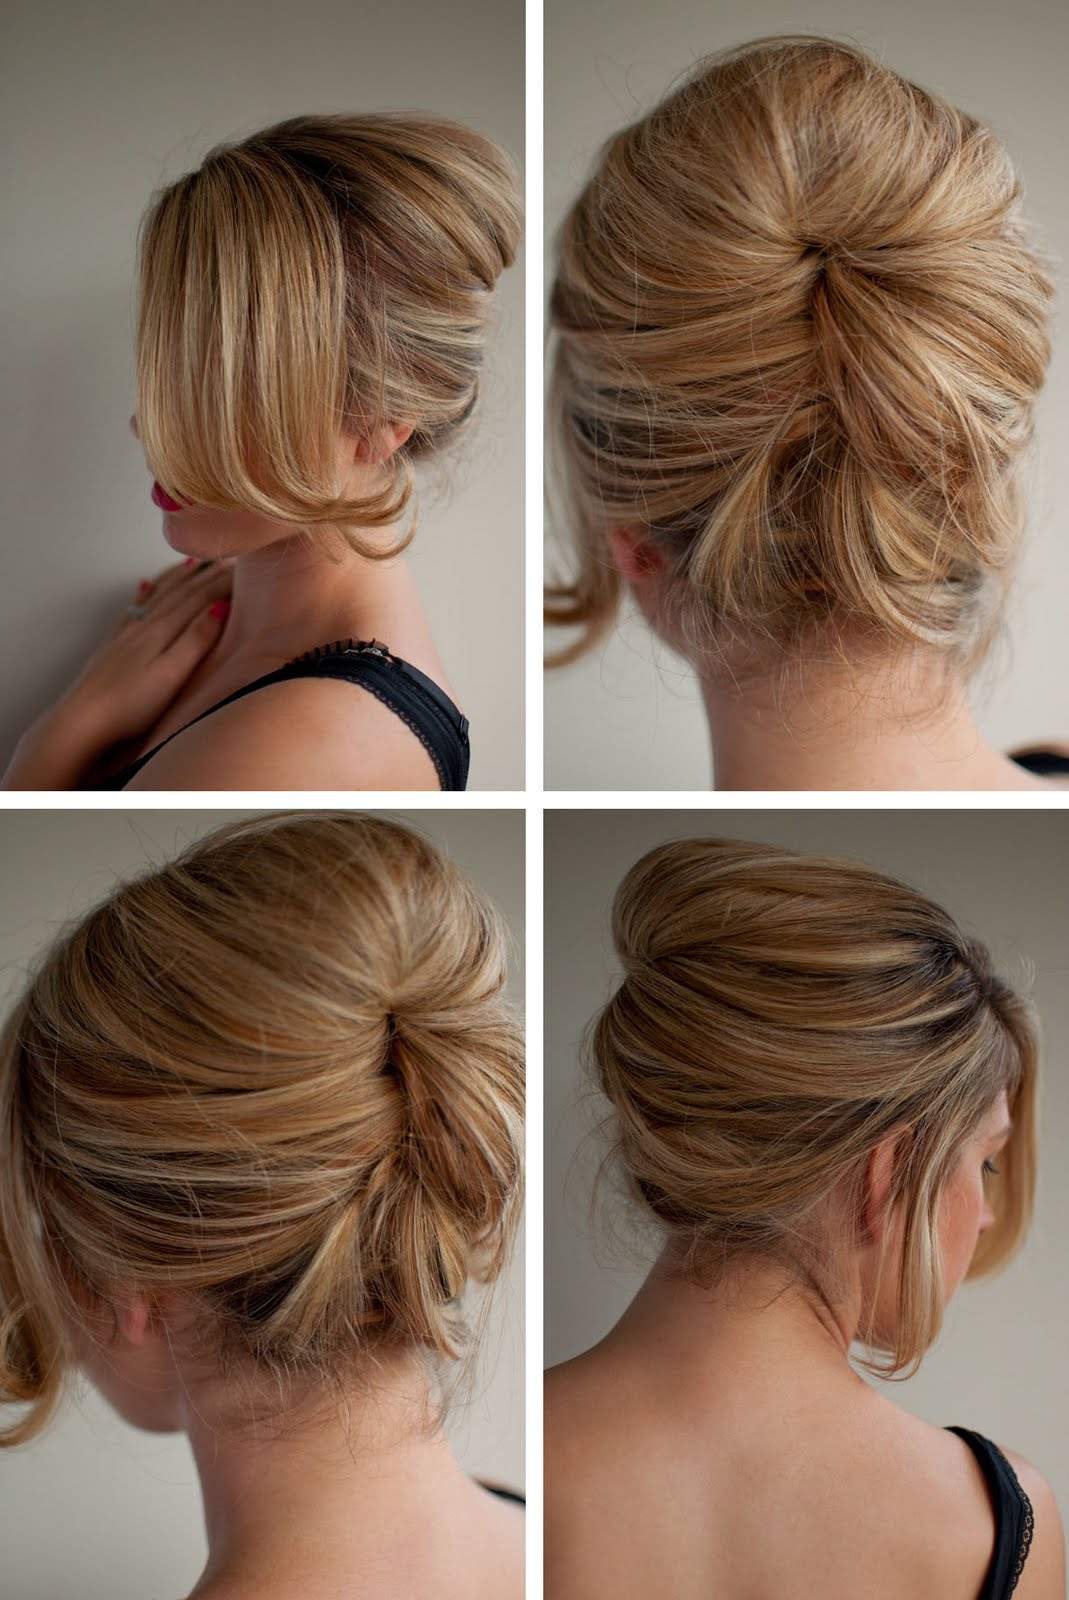 30 days of twist & pin hairstyles – day 8 - hair romance